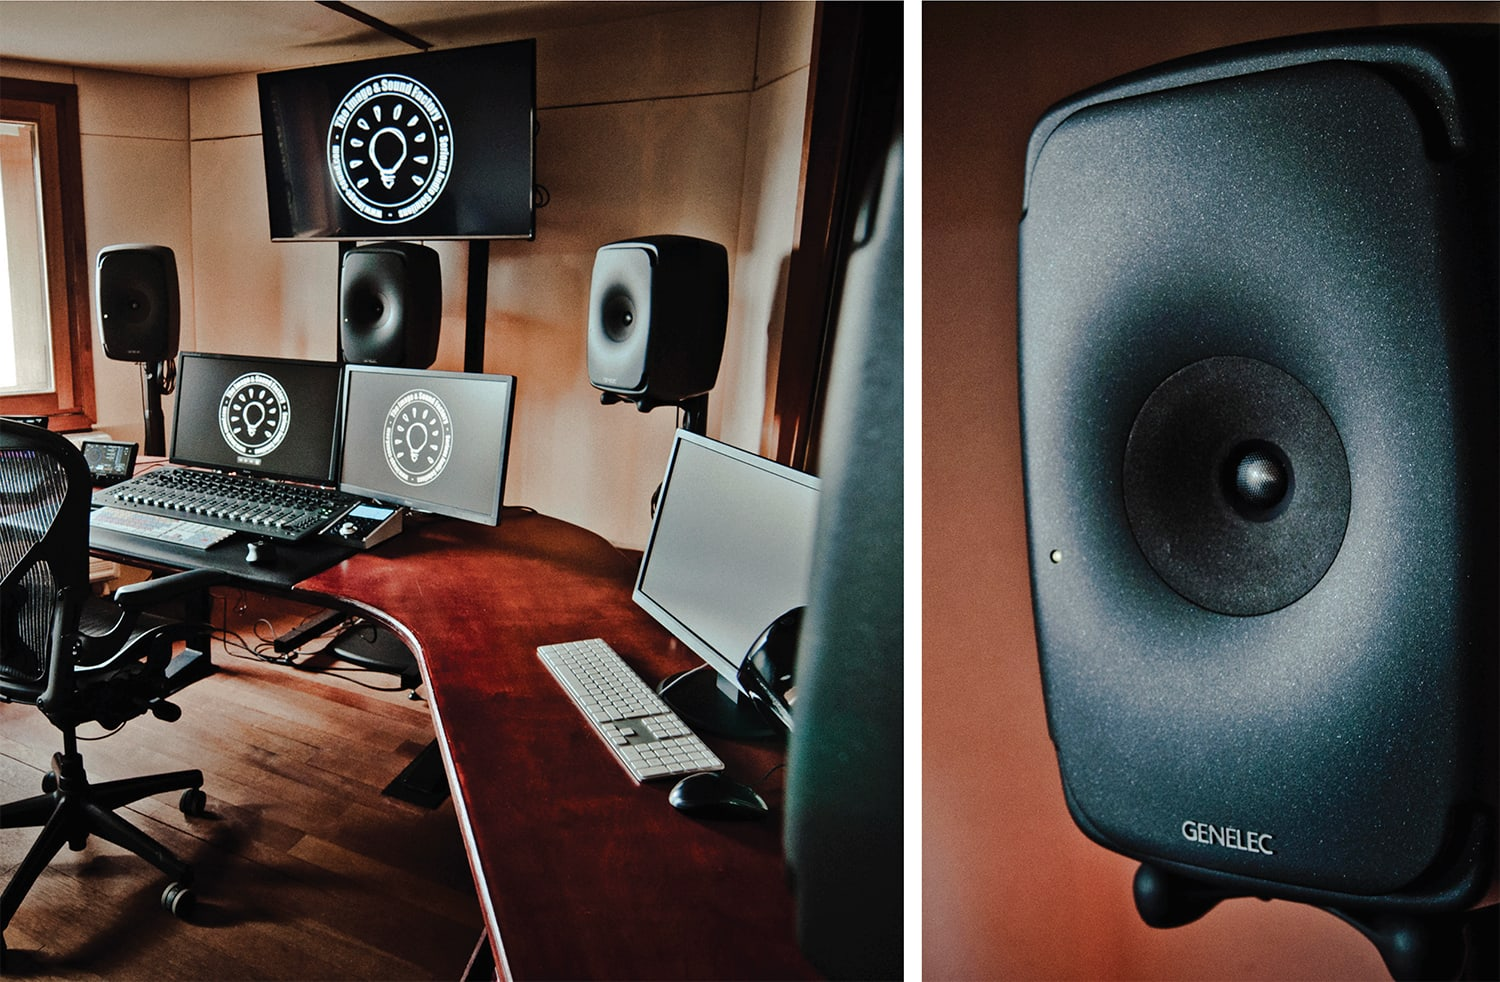 Genelec Case Study: The Image & Sound Factory | XLR